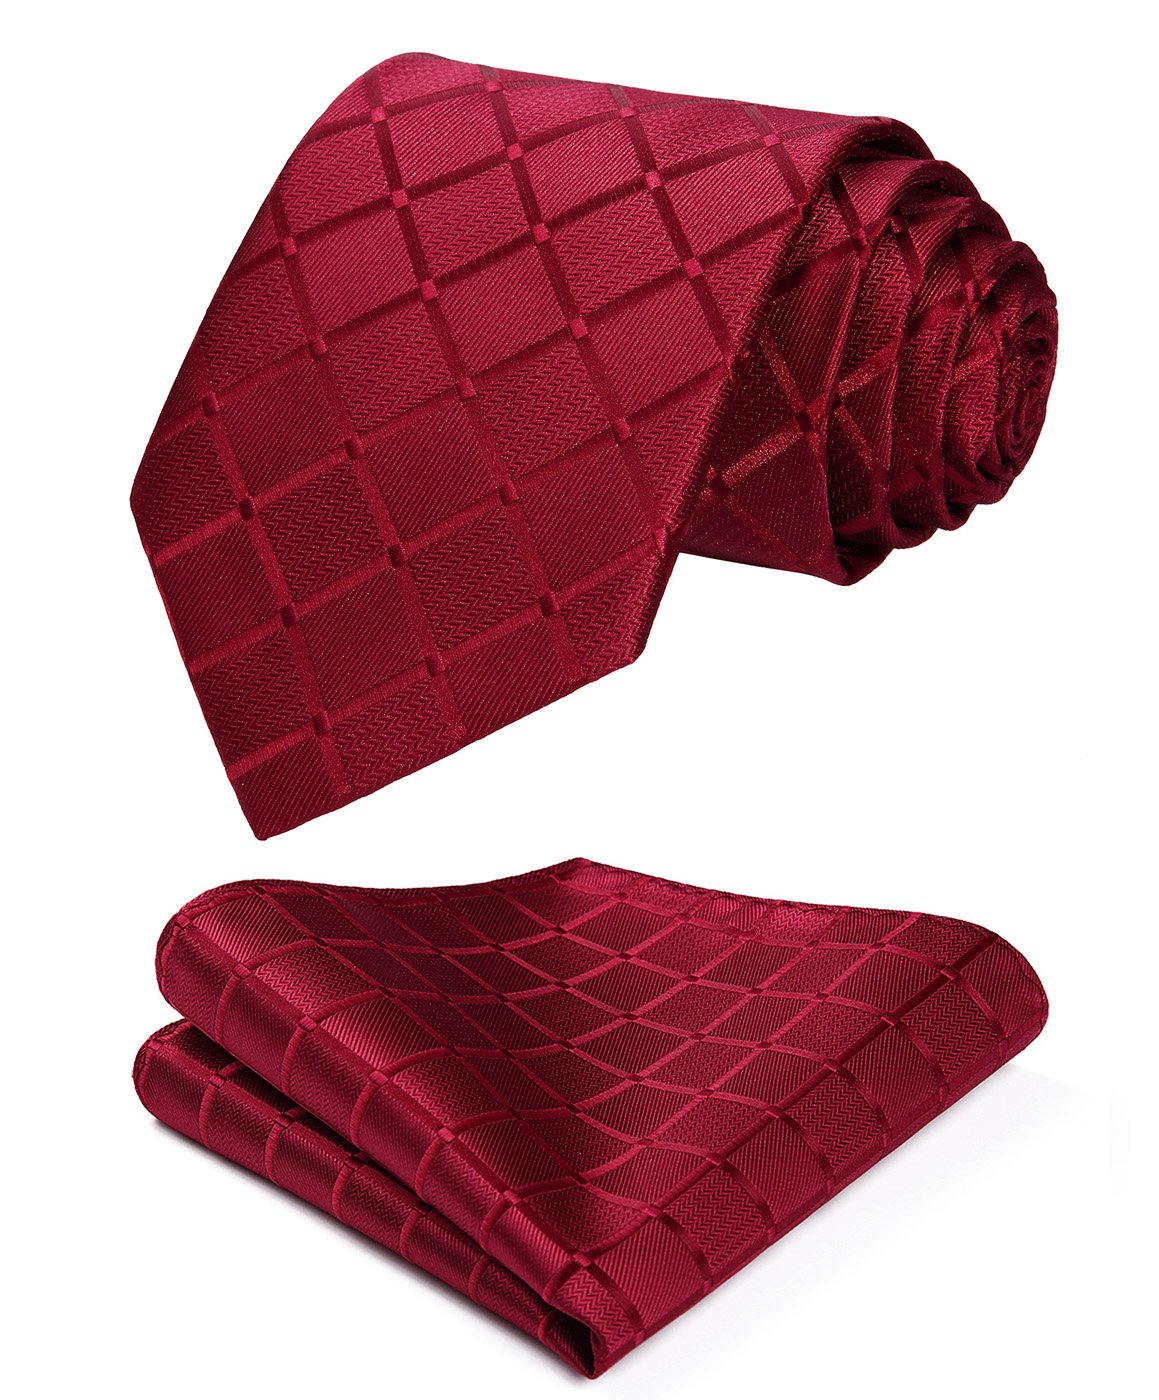 HISDERN Plaid Red Tie Handkerchief Woven Classic Stripe Men's Necktie & Pocket Square Set